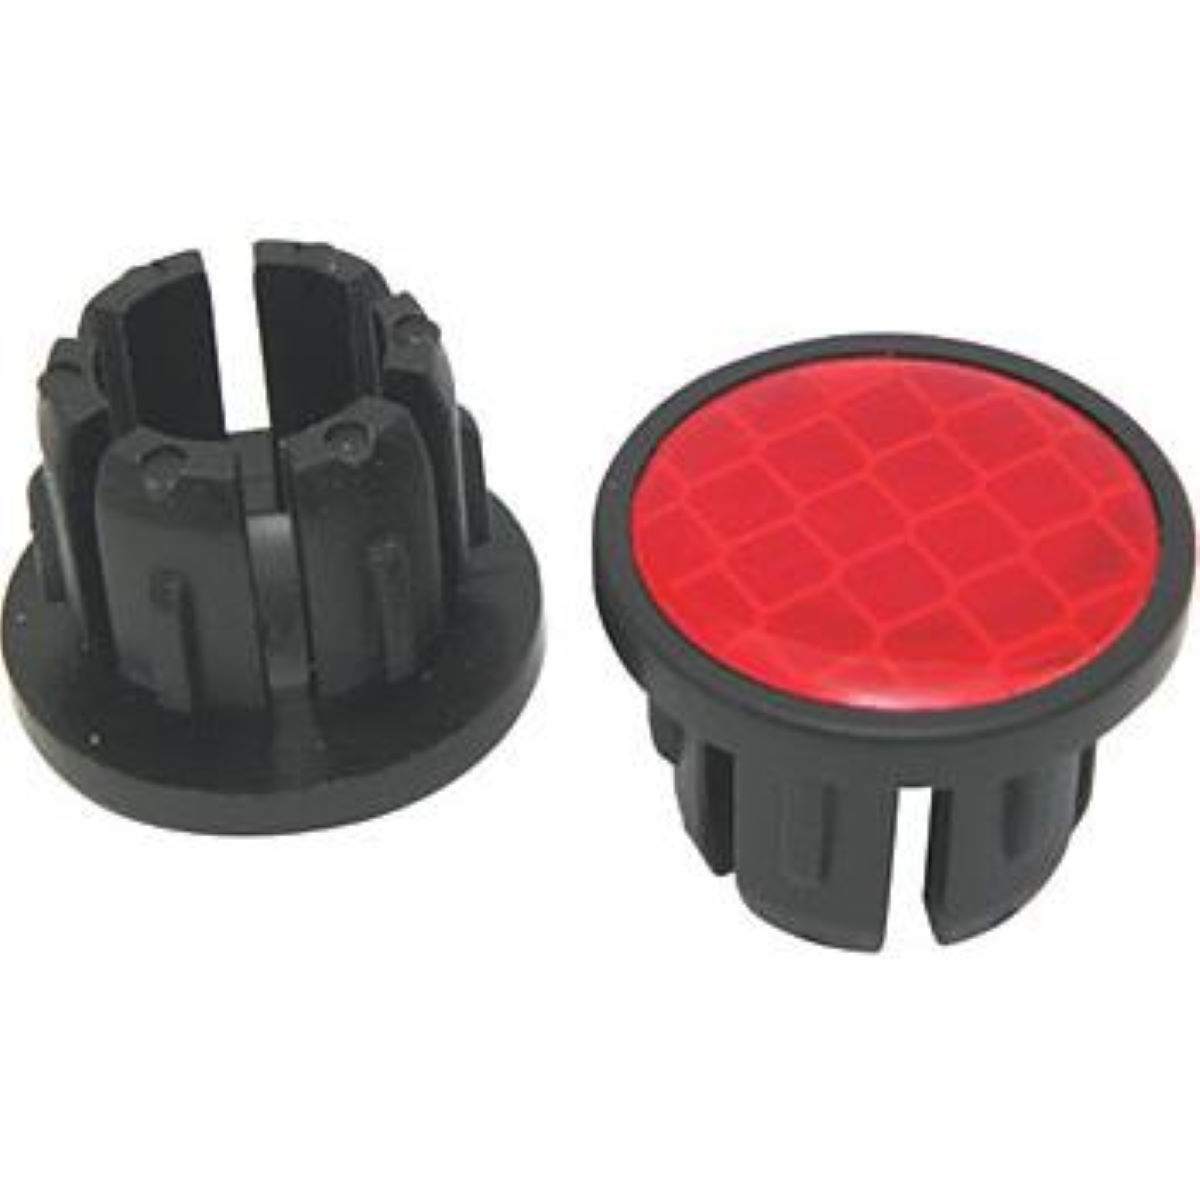 Bike Ribbon Reflective End Plugs